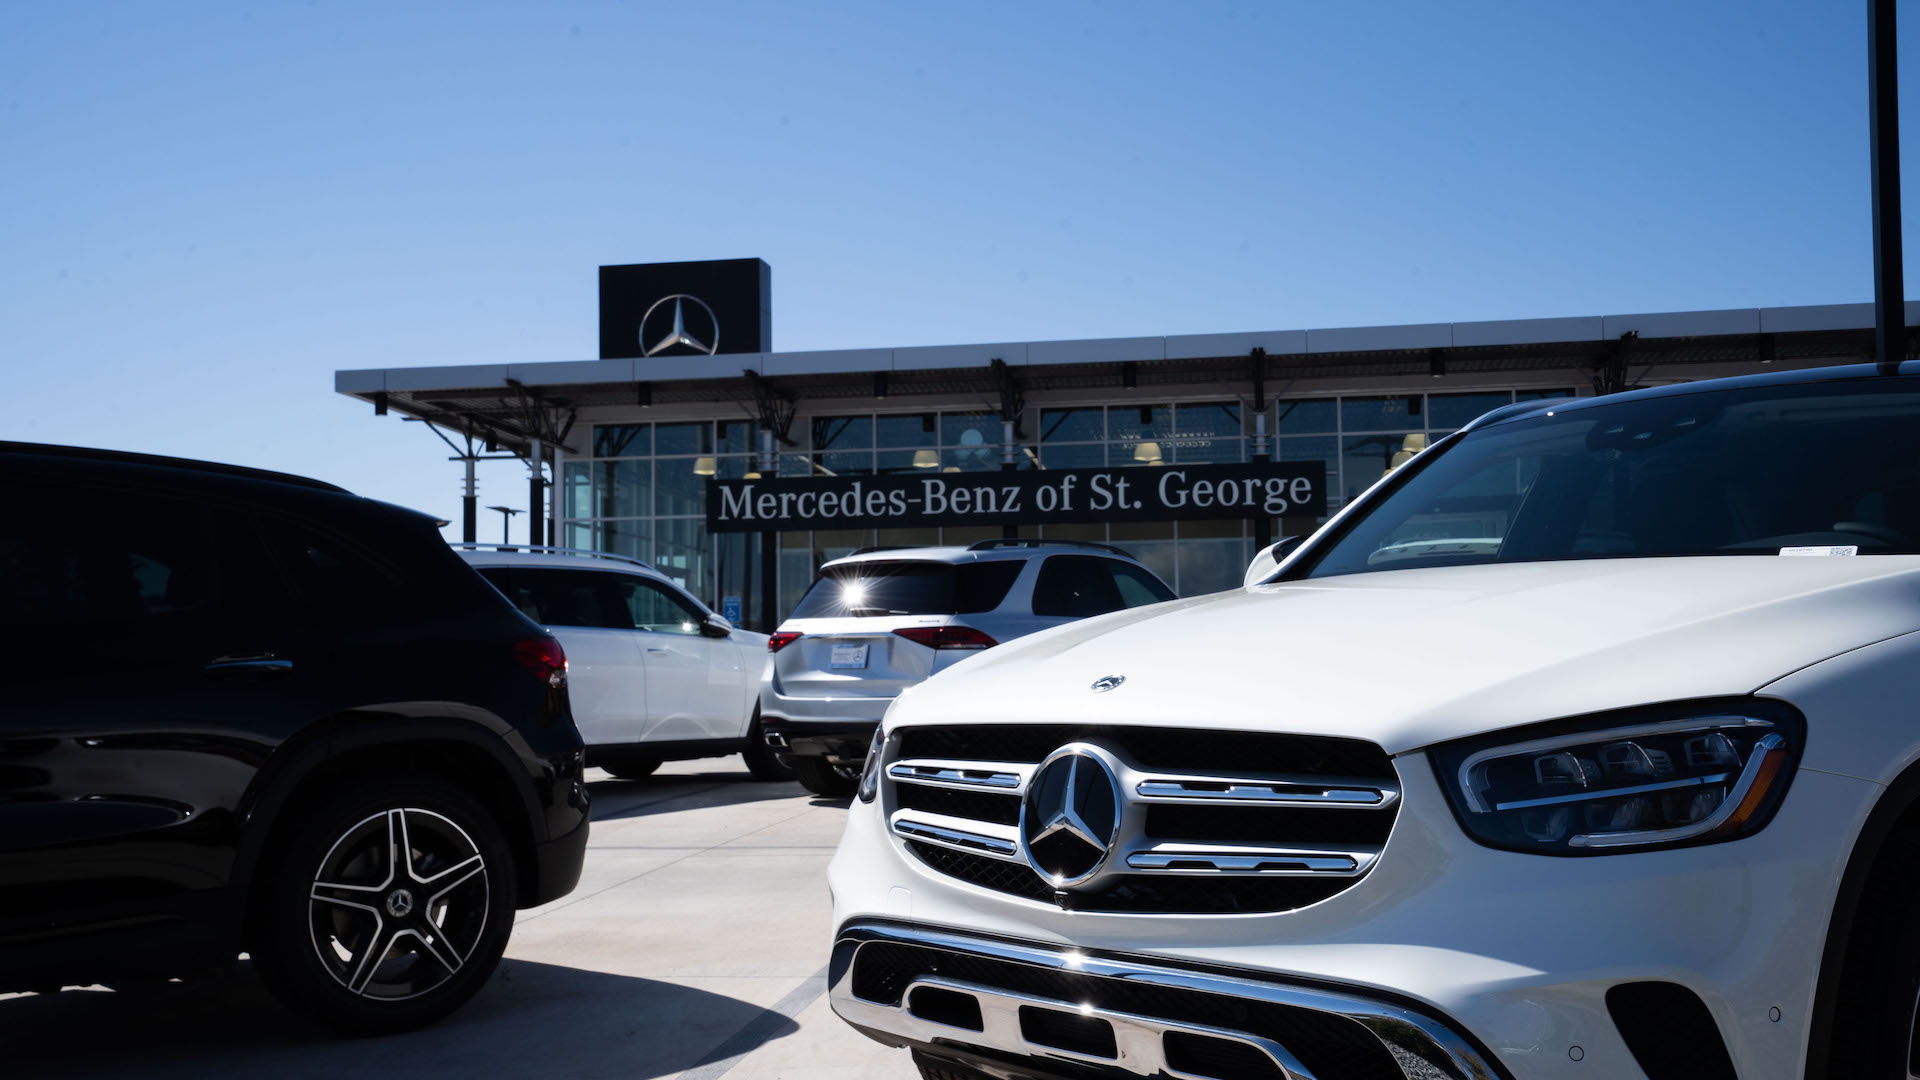 Mercedes-Benz of St. George Service Bay